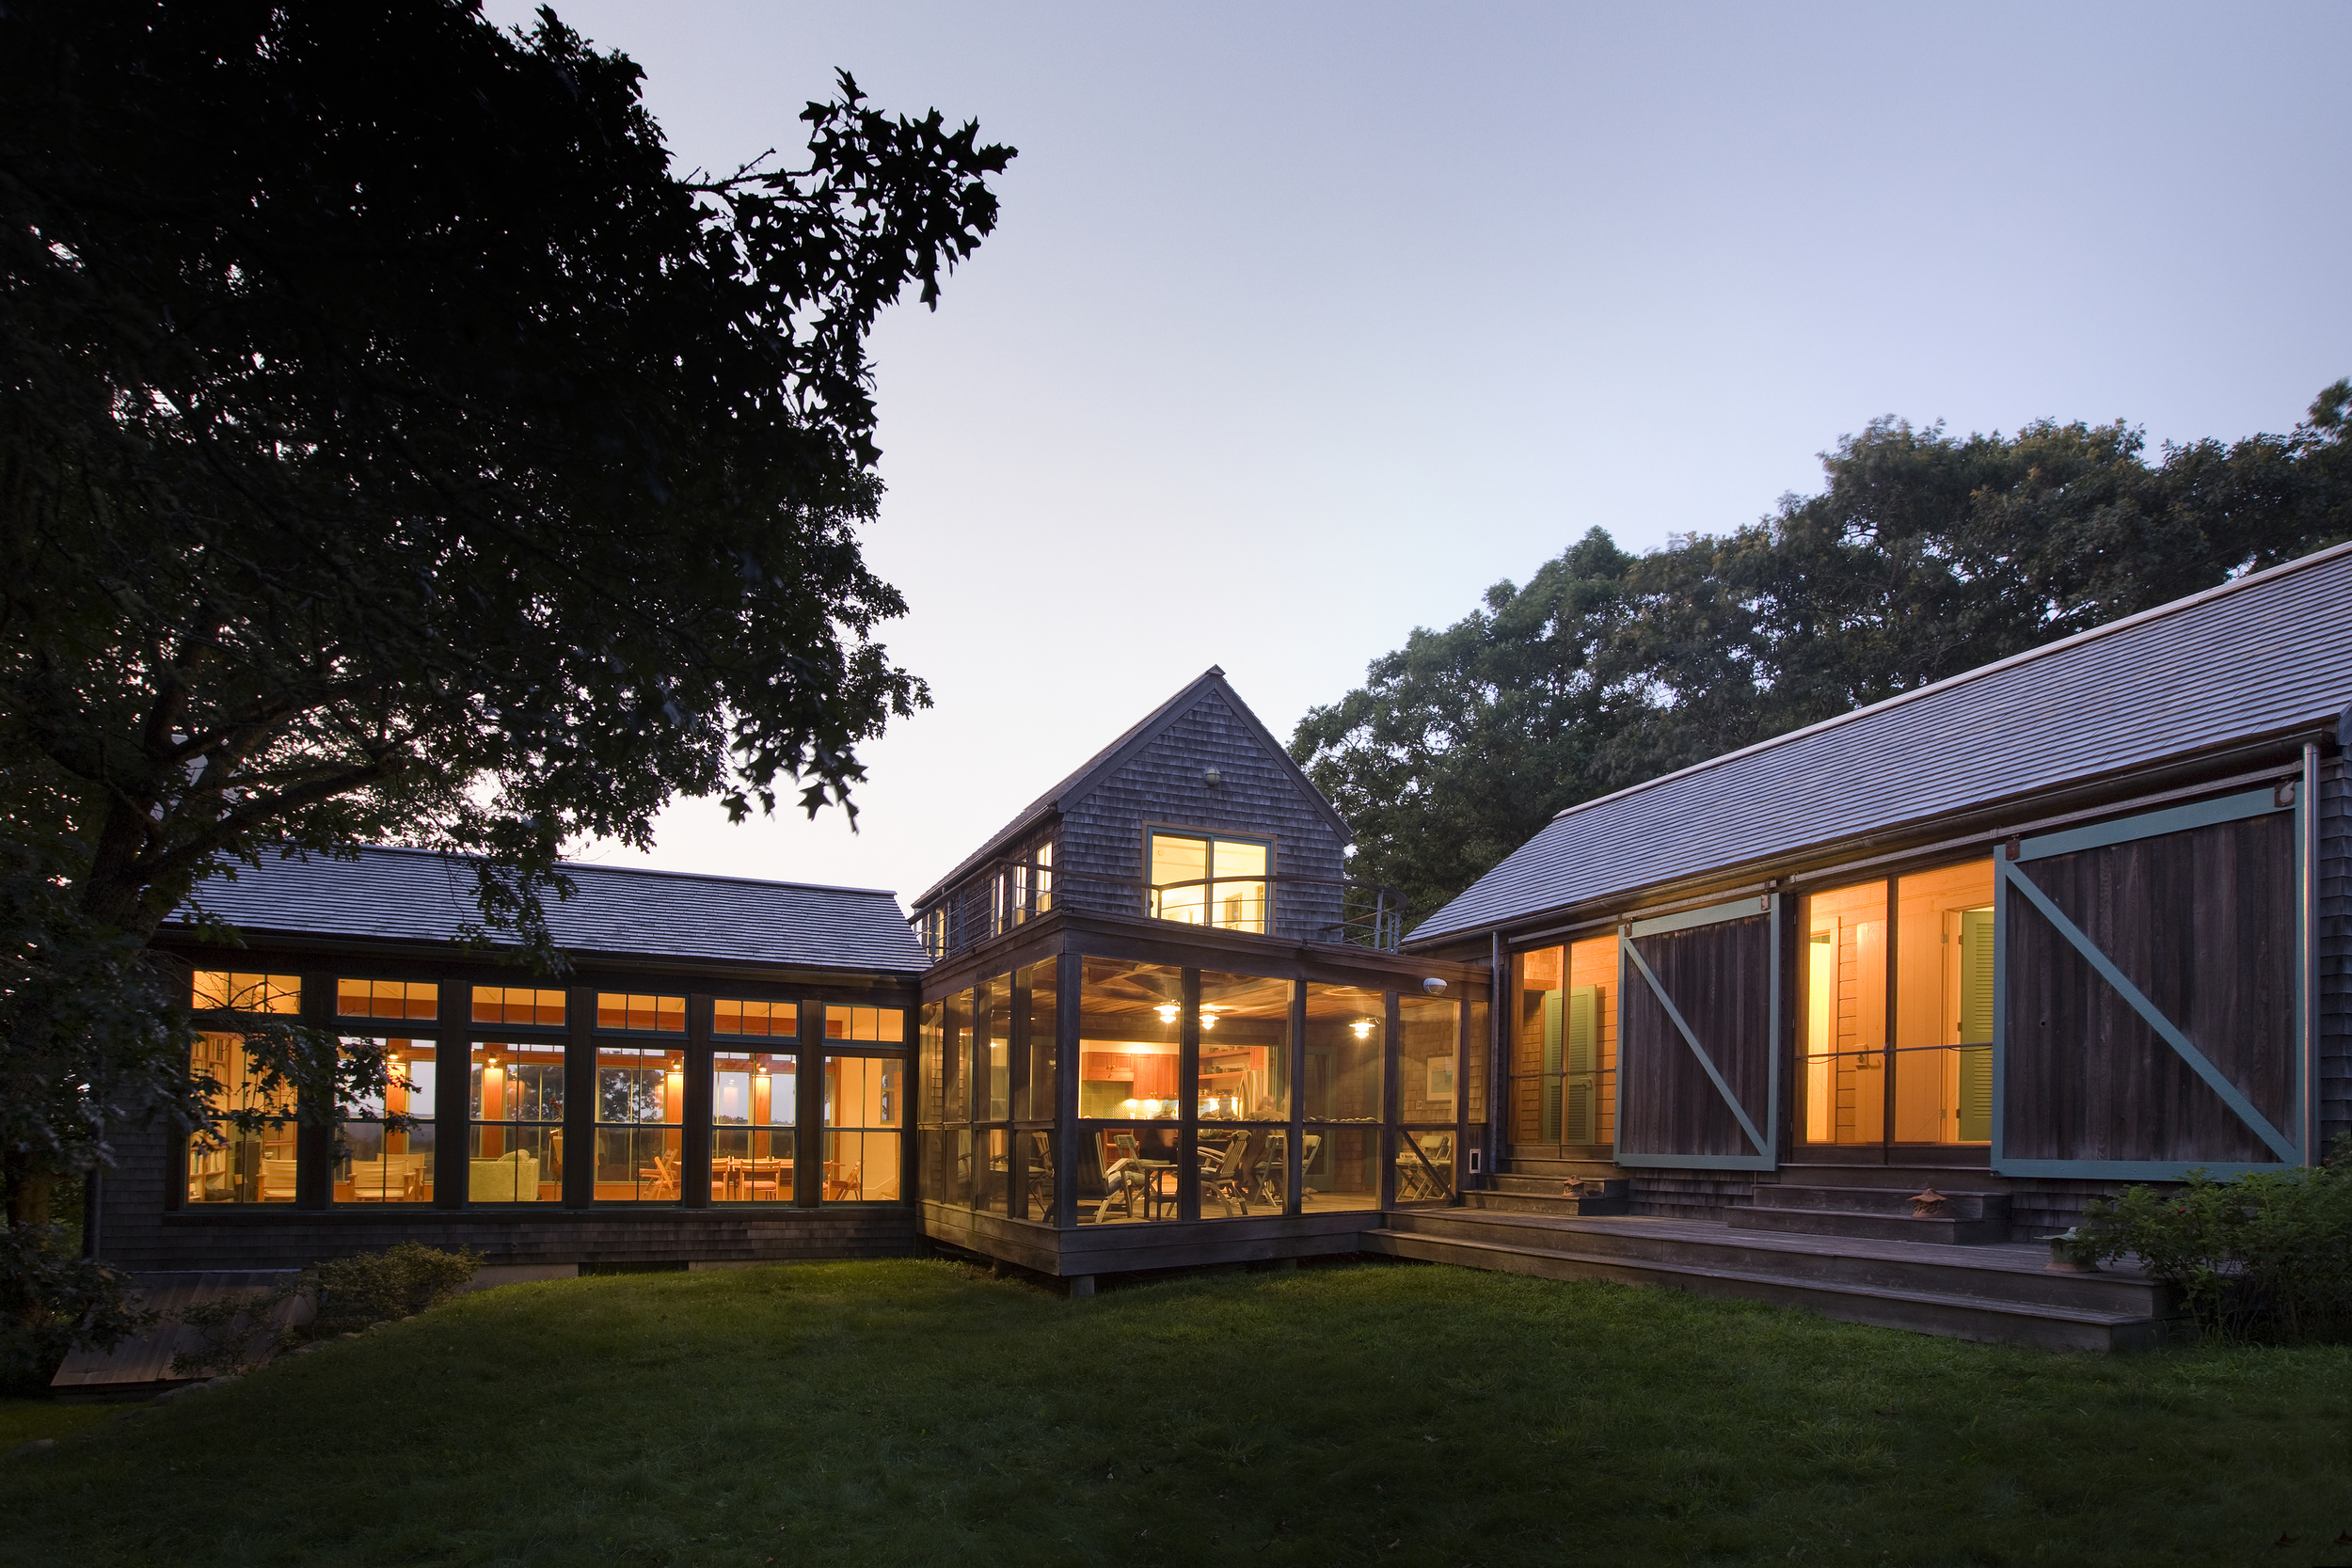 HOUSE AND STUDIO, CHILMARK